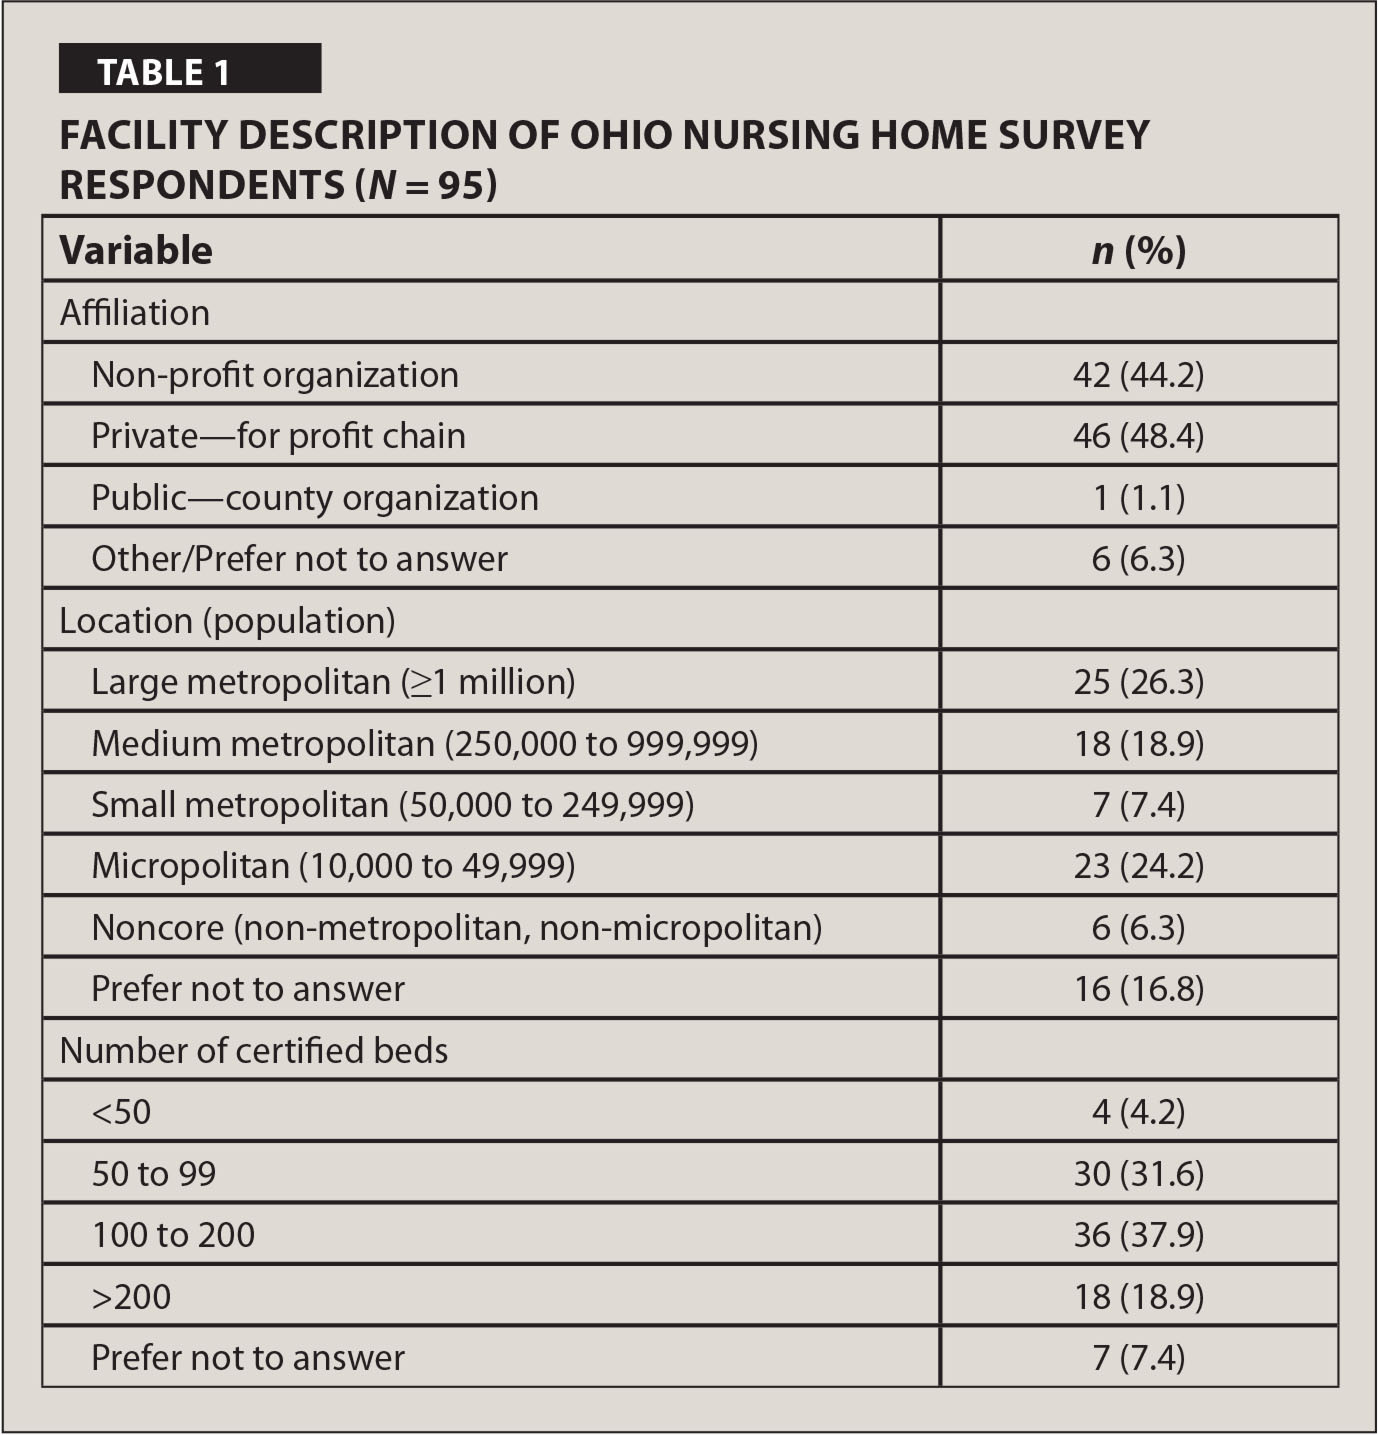 Facility Description of Ohio Nursing Home Survey Respondents (N = 95)